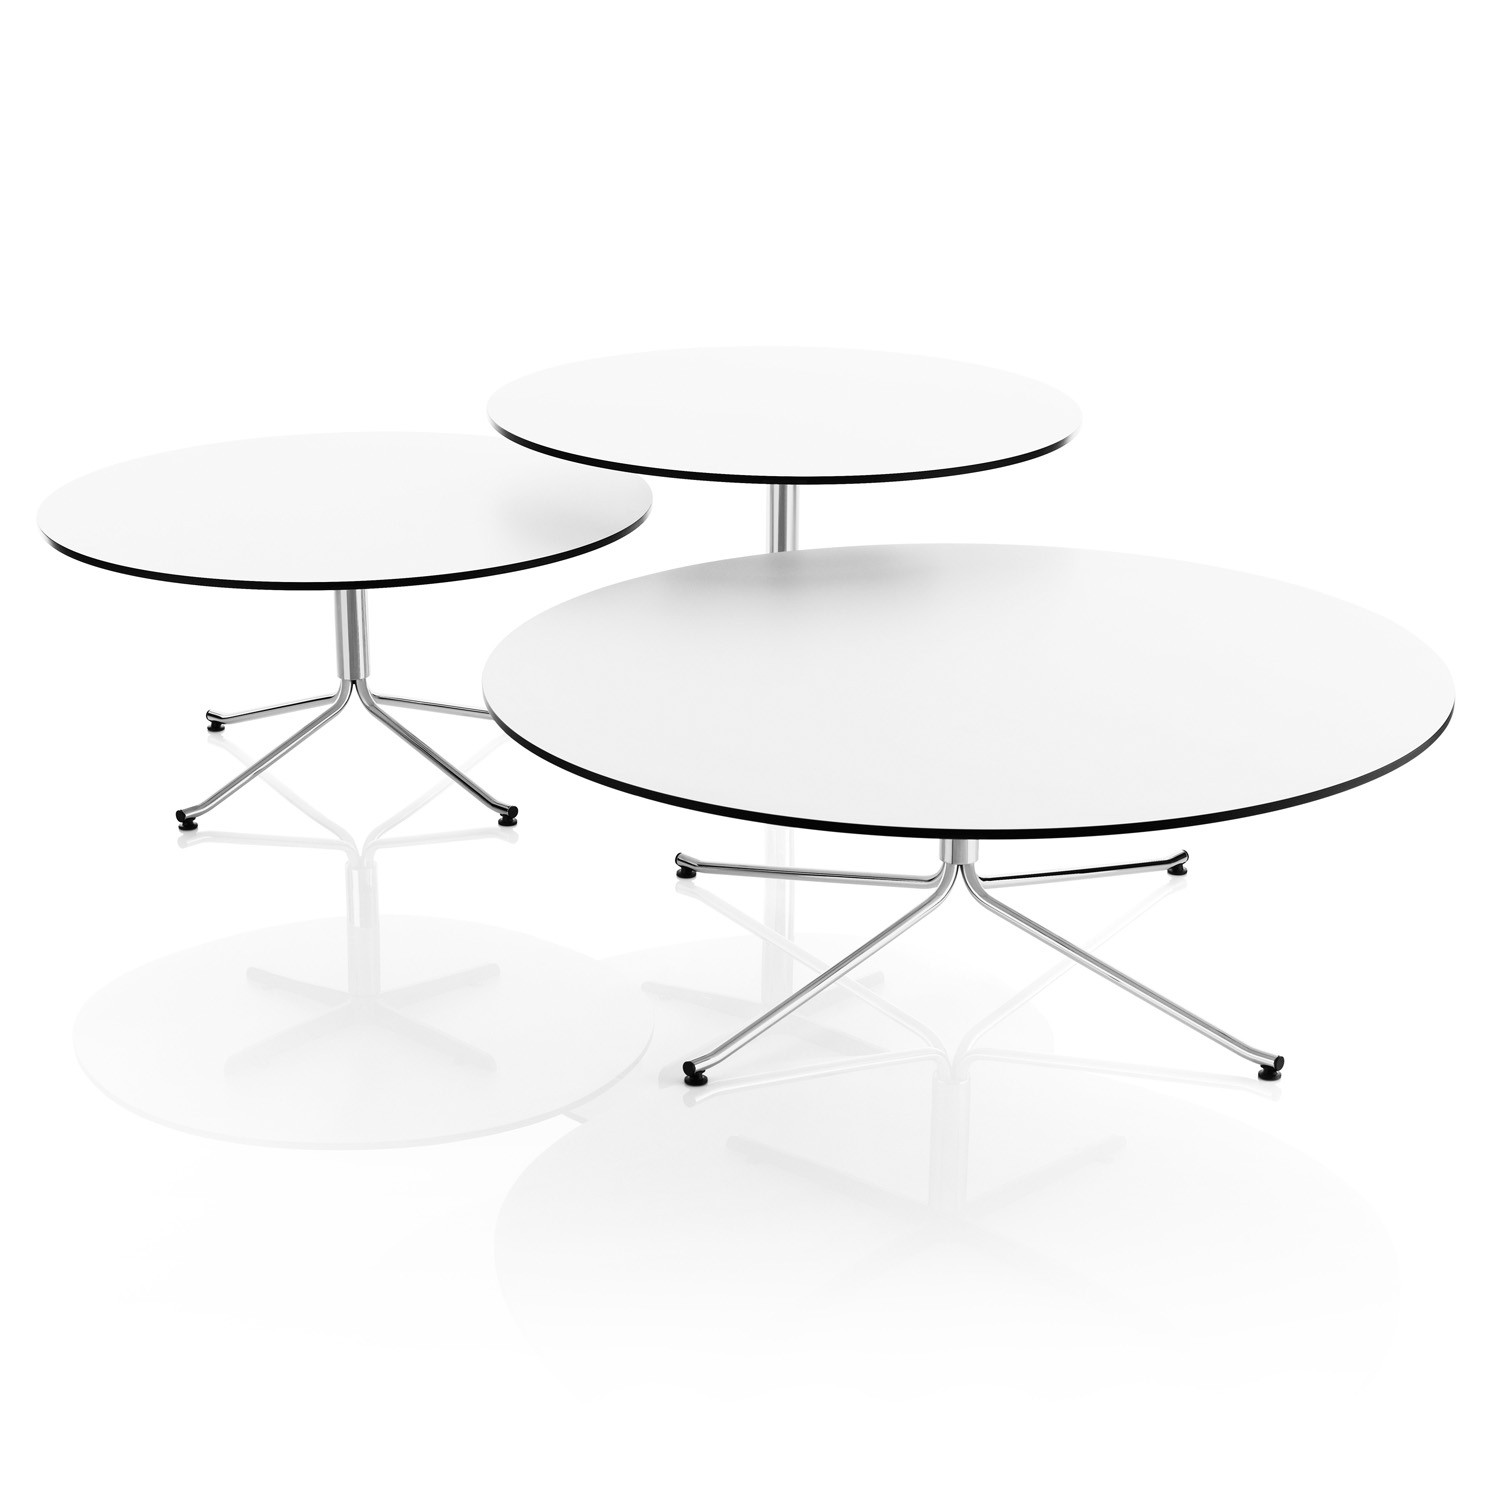 Millibar lounge table series